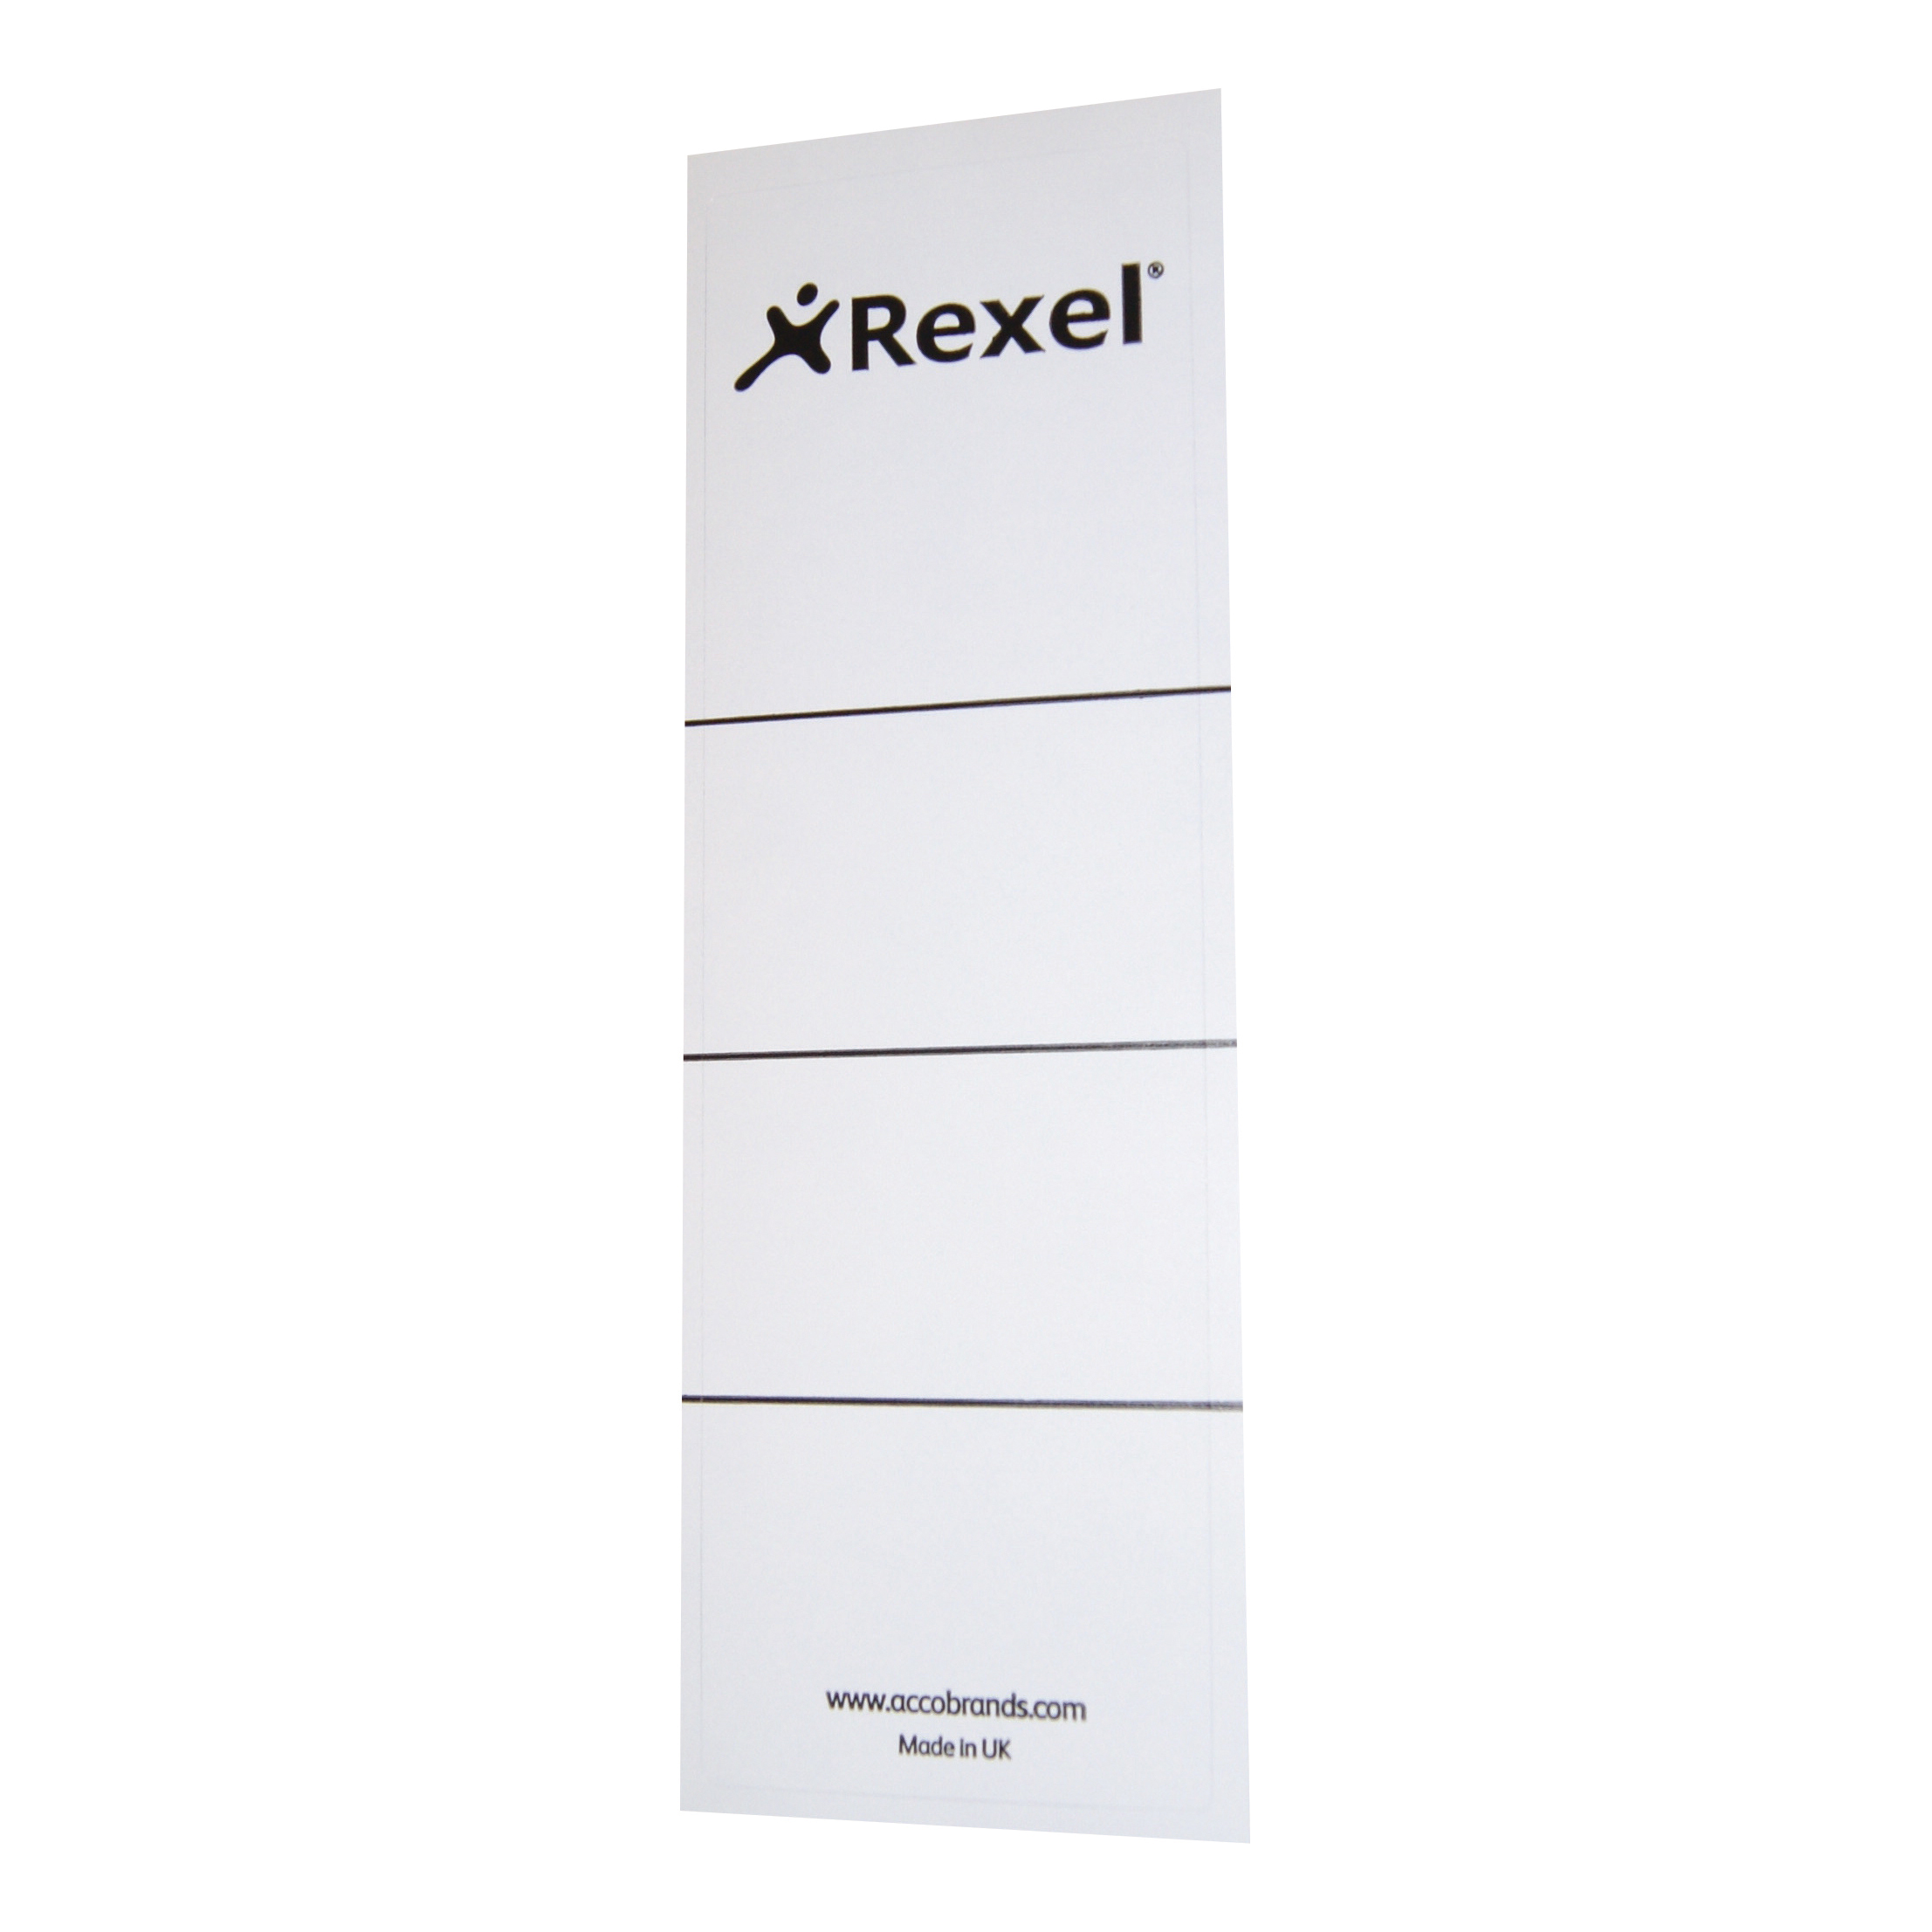 Rexel Replacement Spine Labels 191x60mm White Ref 29300EAST Pack 100